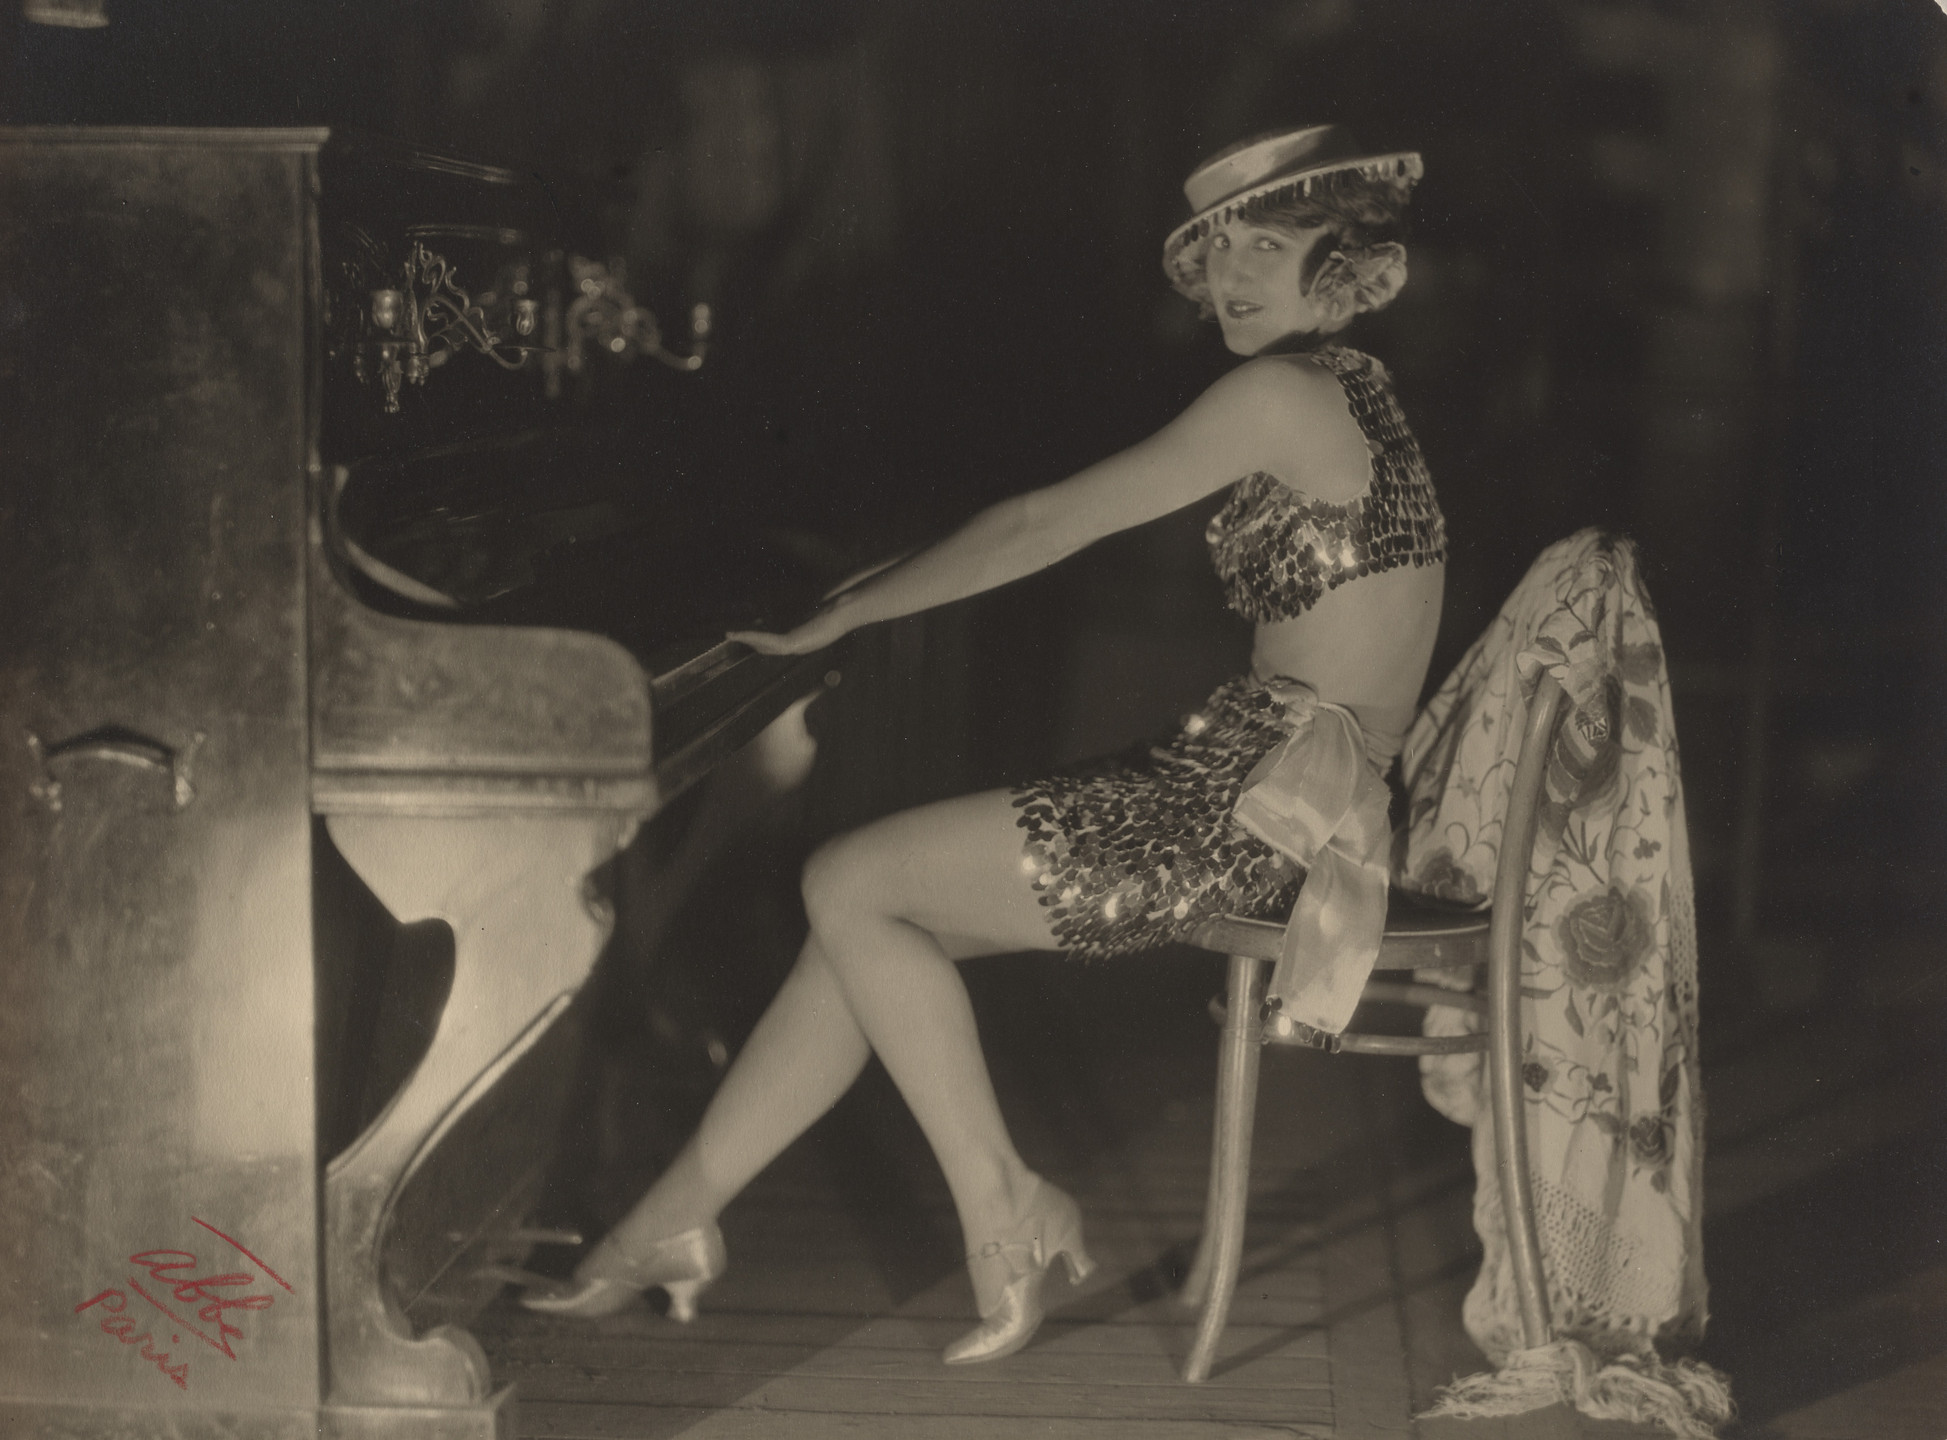 James Abbe. Dora Duby at the Champs Elysée Theater. c. 1919